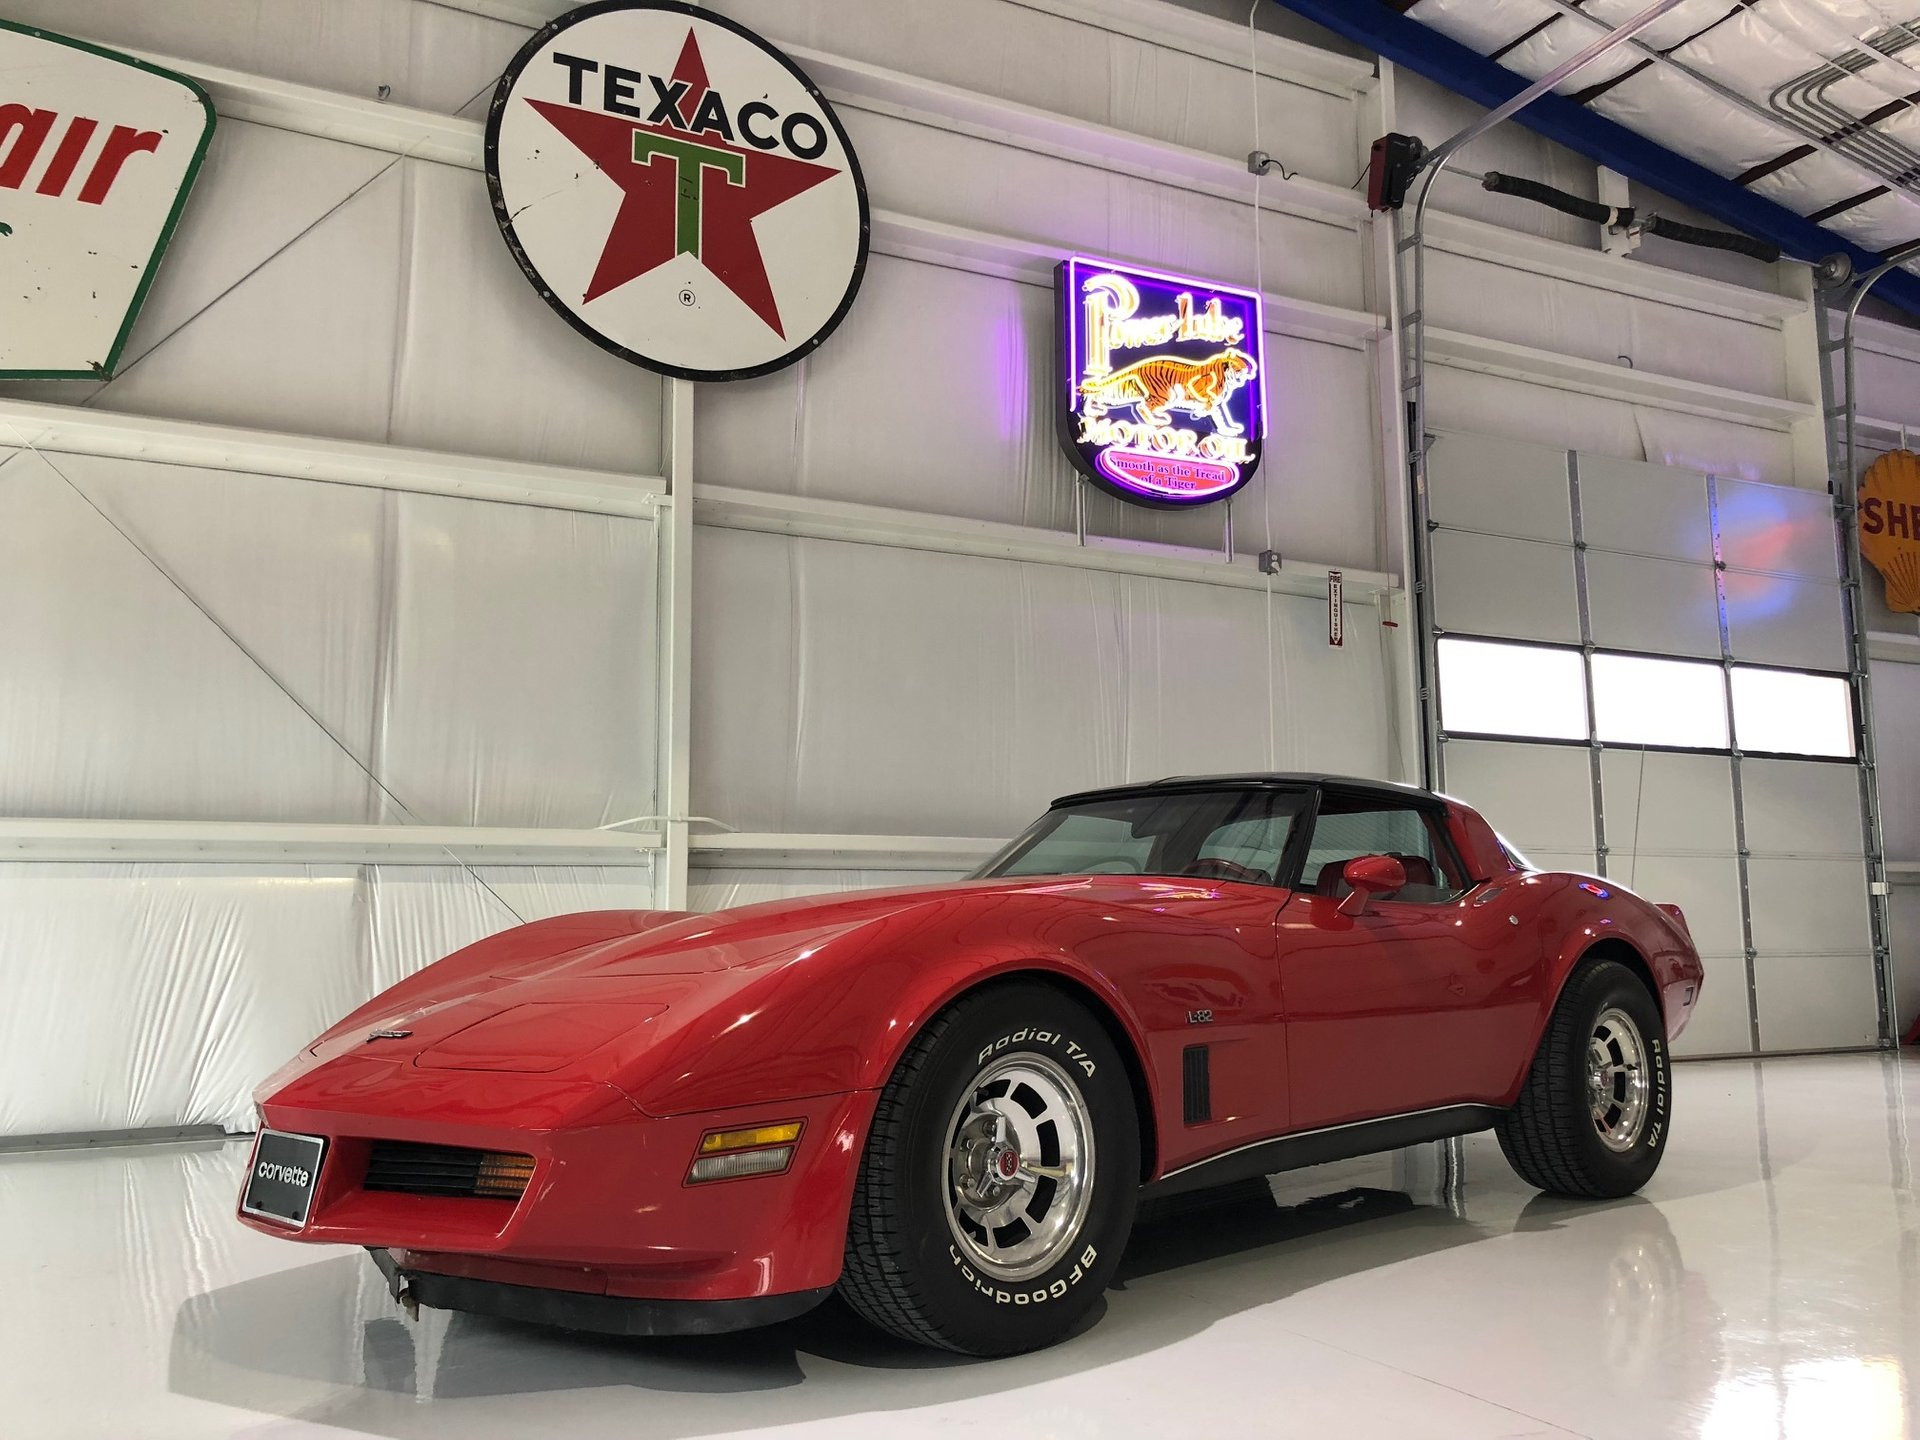 1980 chevrolet corvette t top coupe